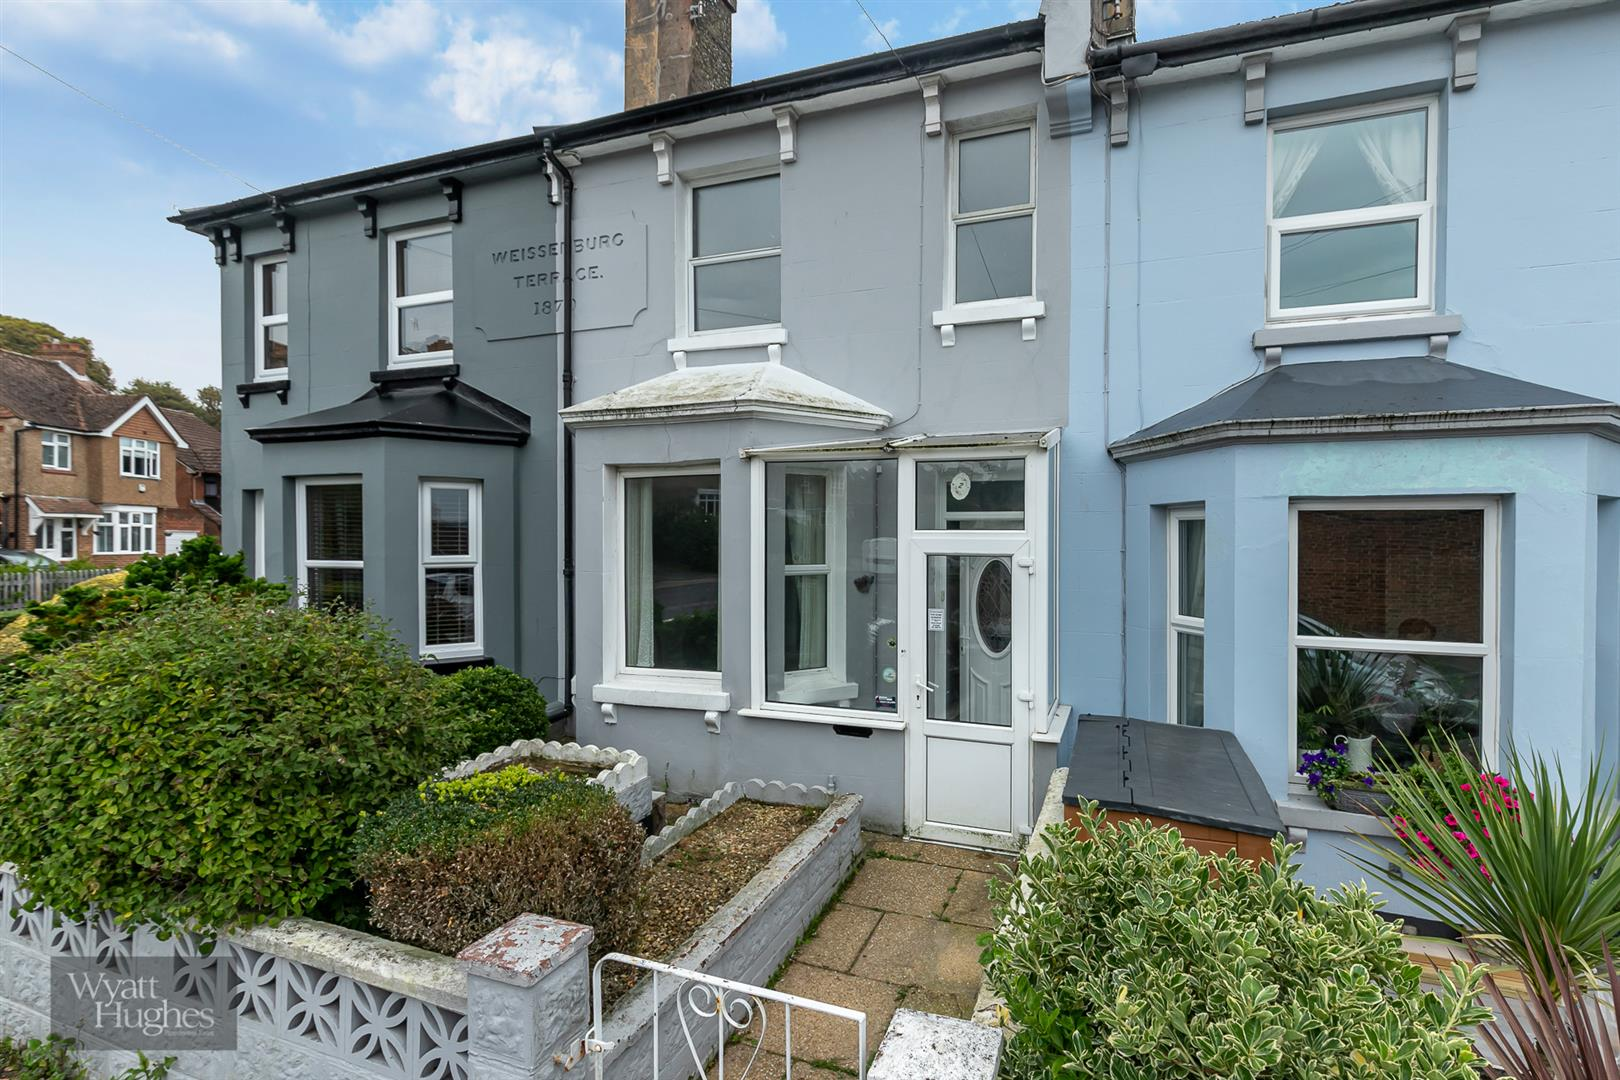 2 bed terraced house for sale in Wilmington Road, Hastings, TN34